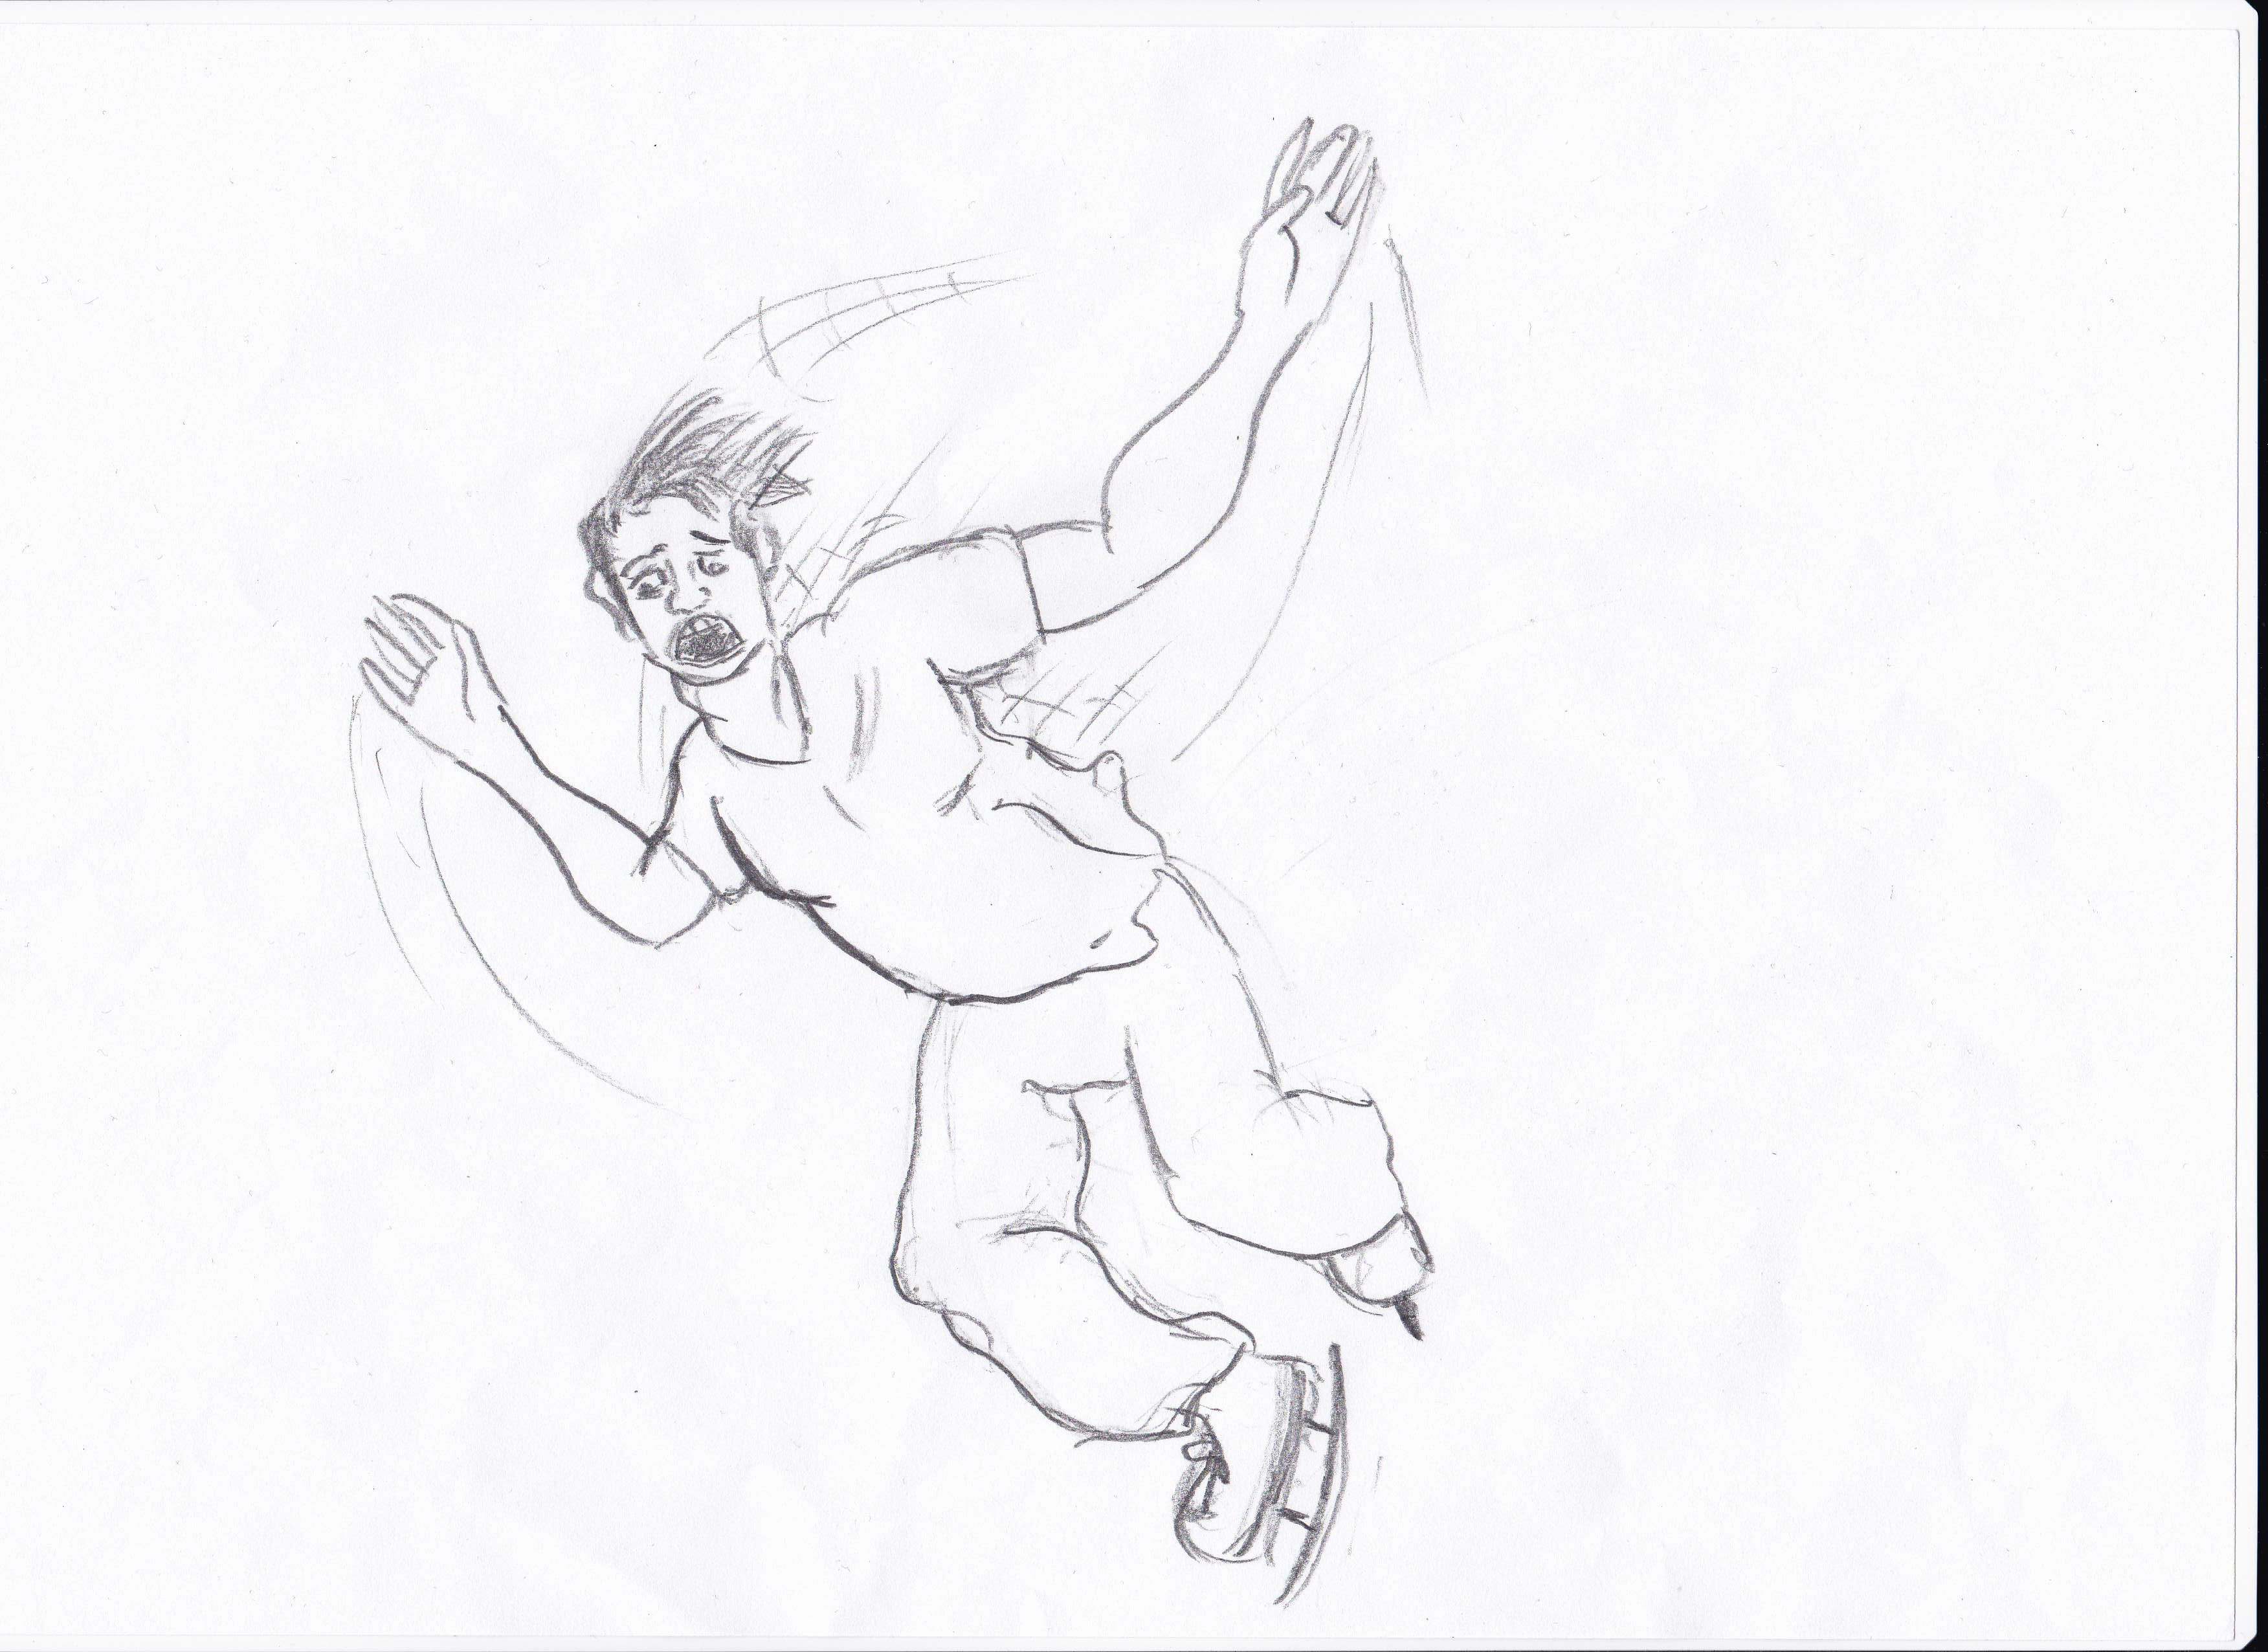 Person Falling Drawing